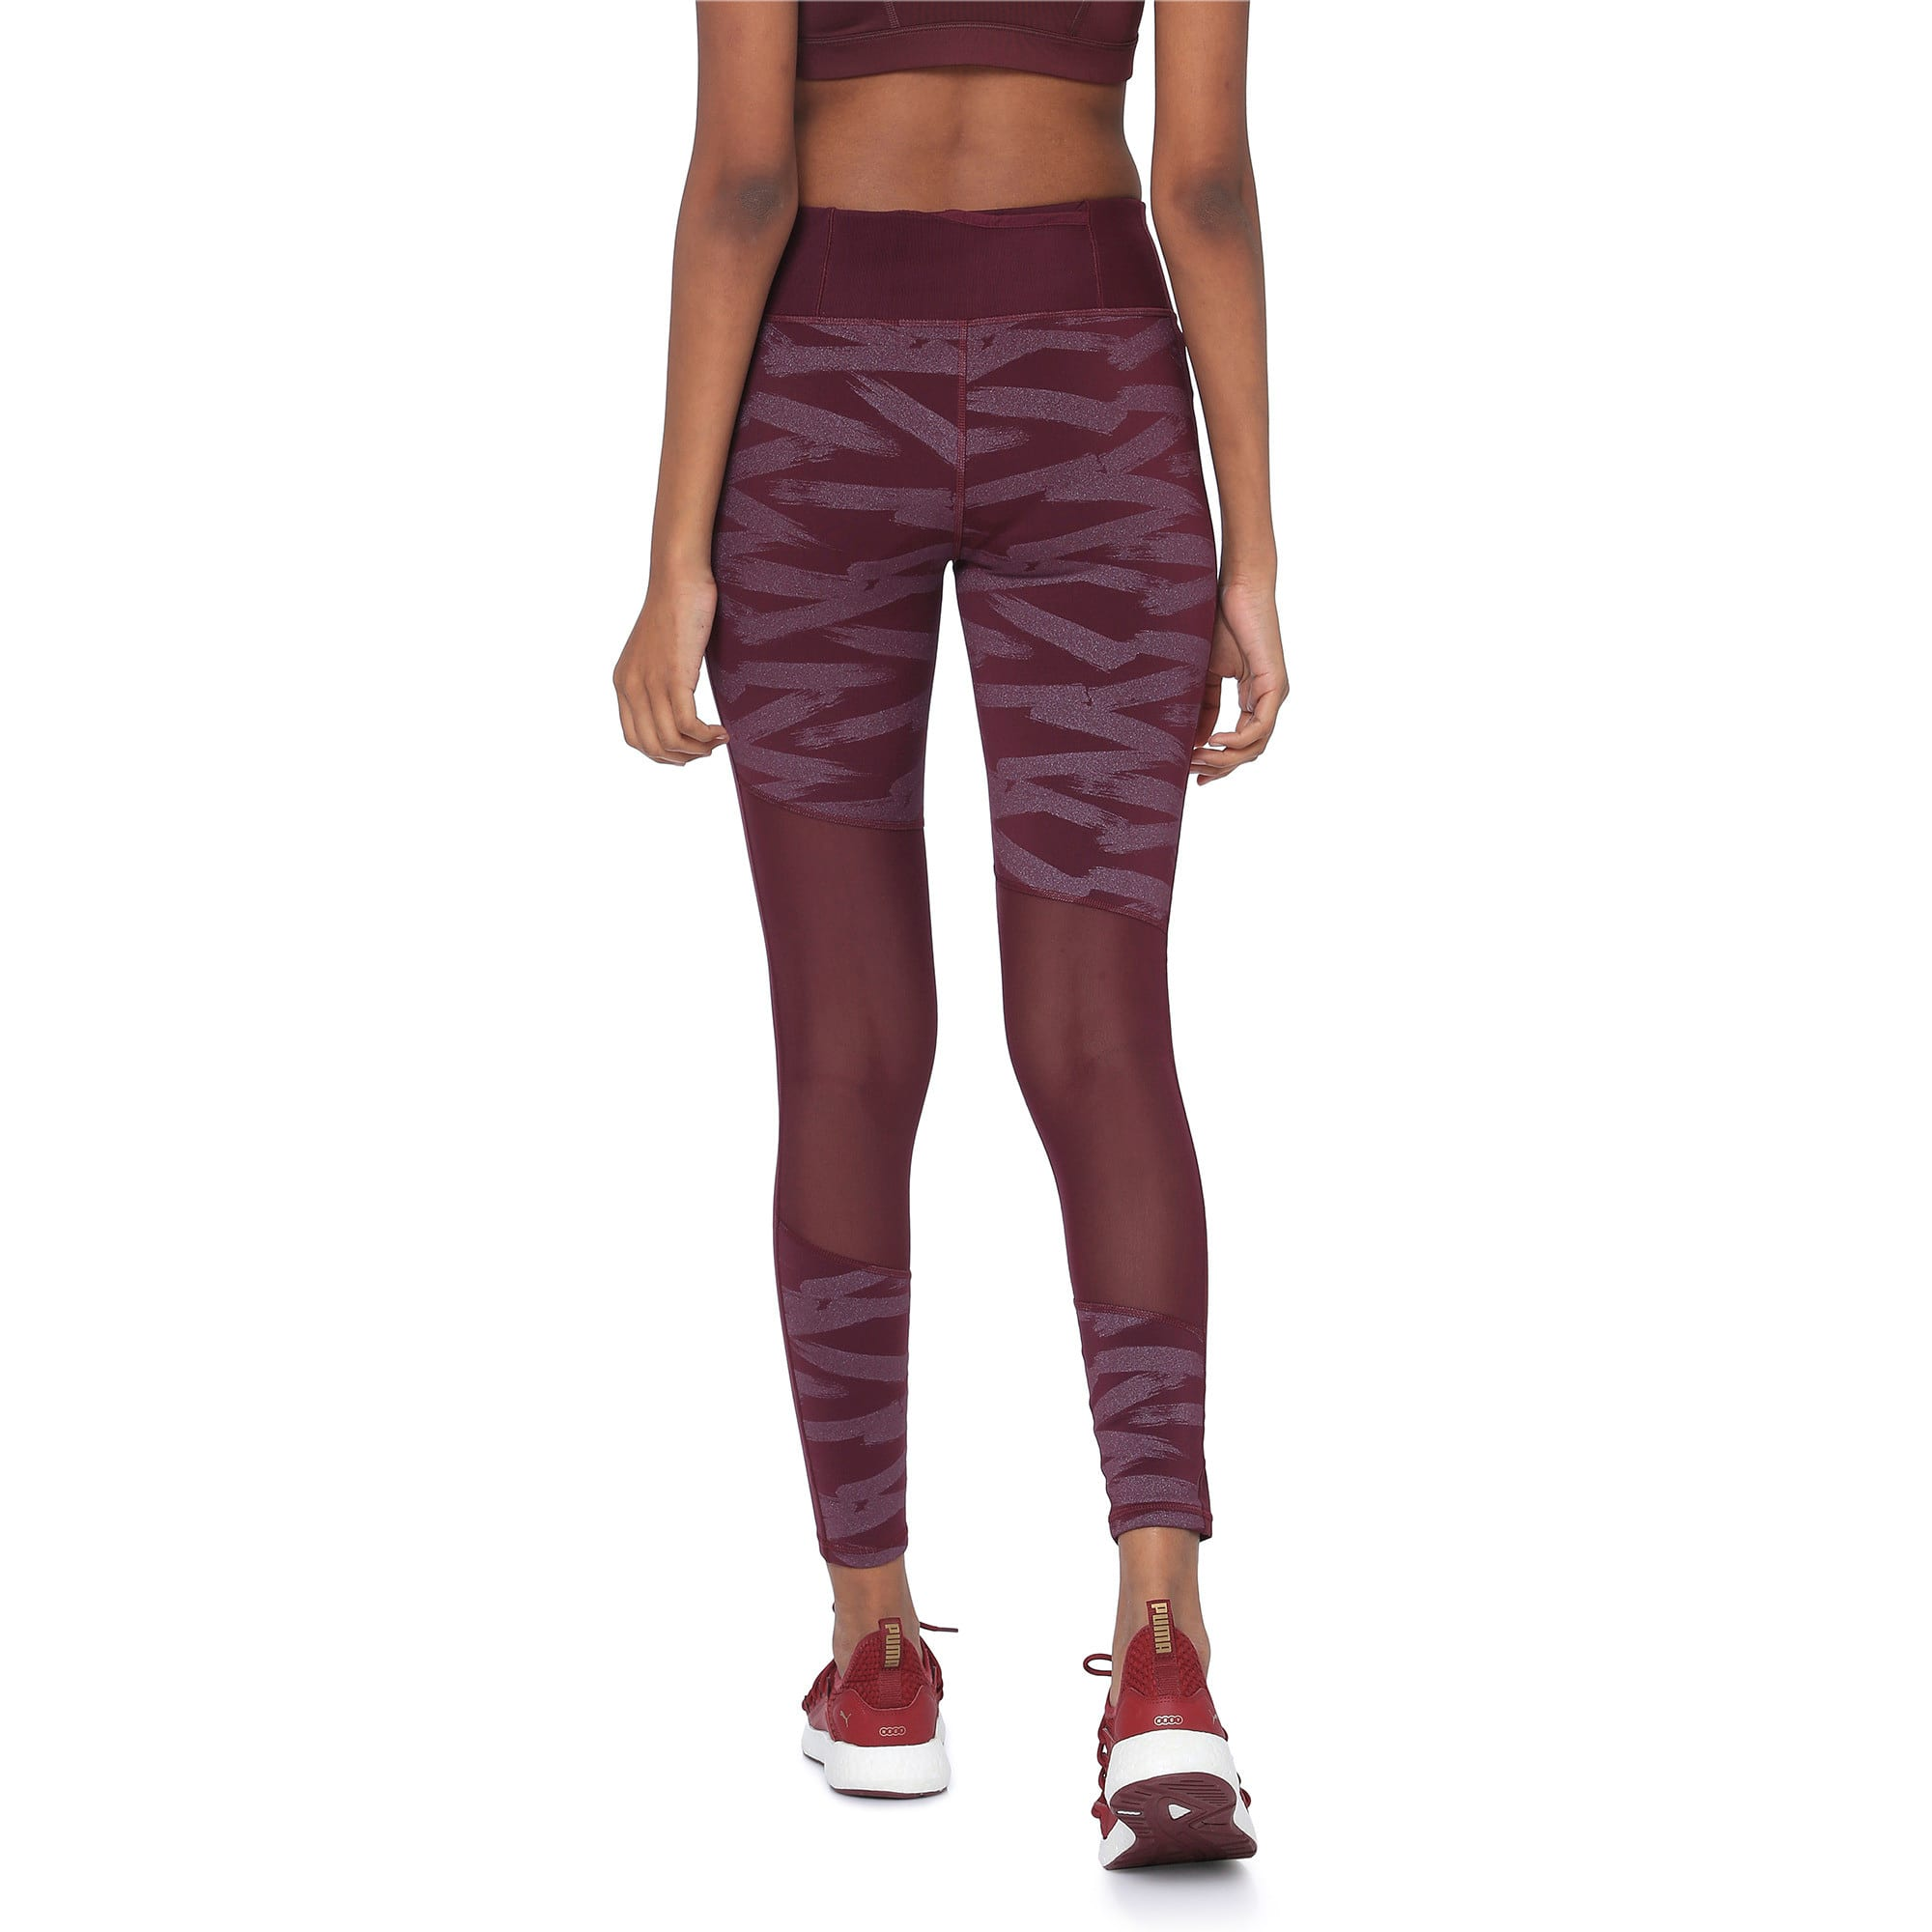 Thumbnail 3 of Always On Graphic 7/8 Women's Tights, Fig-Magenta Haze, medium-IND